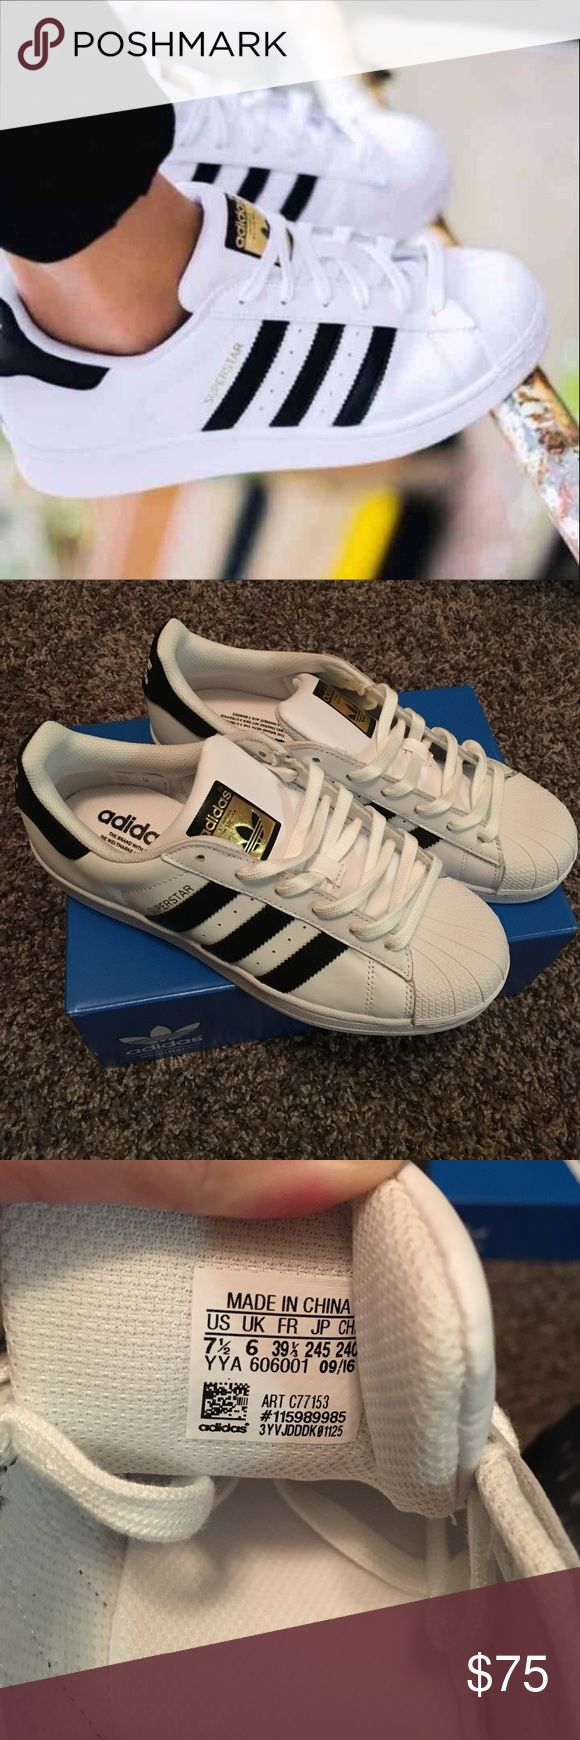 BRAND NEW Adidas Superstars New out of box, never been worn. Got them as a wonderful gift but they're unfortunately too big. They have a very small customization on the left shoe only which is why they are discounted. Could be easily covered up with black shoe paint or peeled off if you know how to do that. Adidas Shoes Sneakers